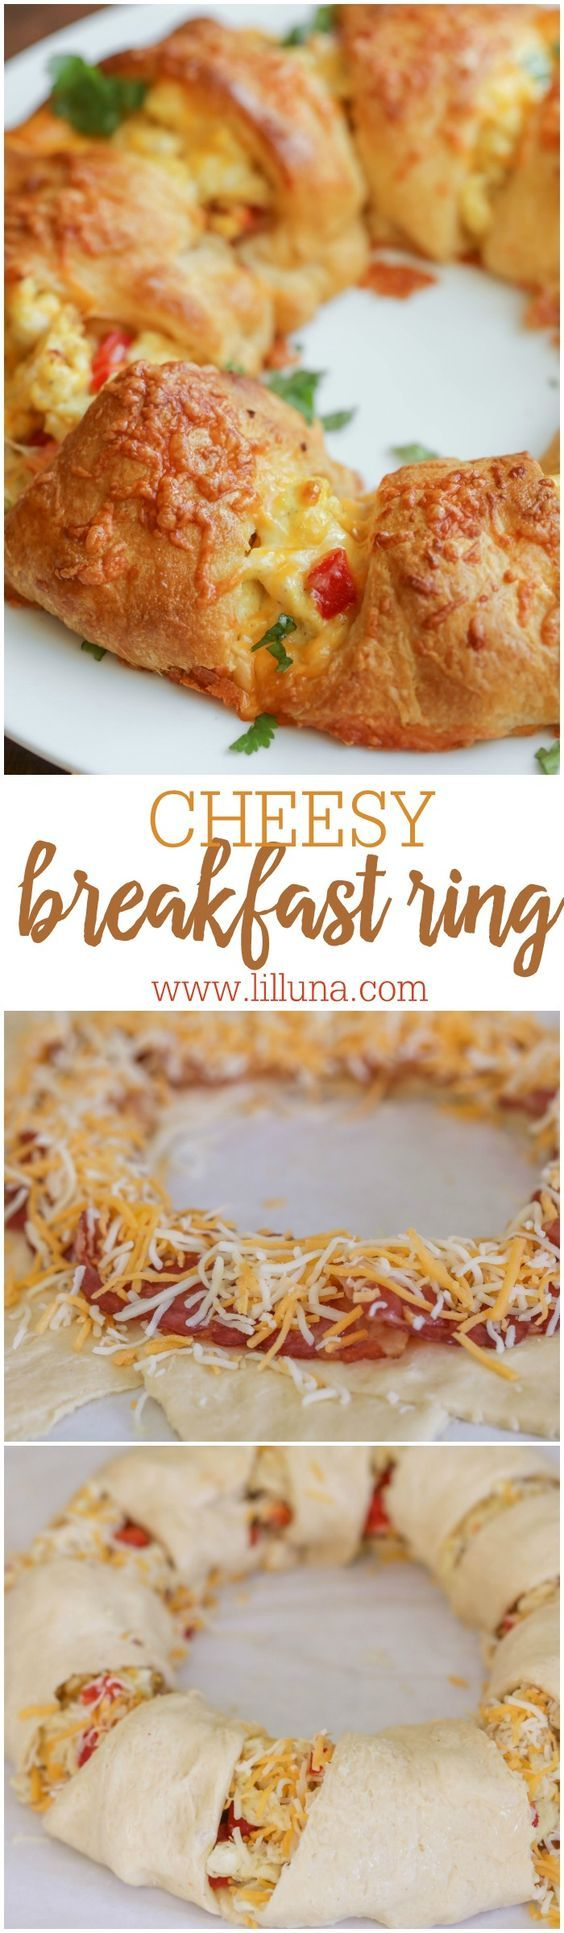 Cheesy Breakfast Ring - delicious cheesy, bacon and pepper-filled eggs inside a ring of delicious crescent roll dough. Its our new favorite breakfast recipe!